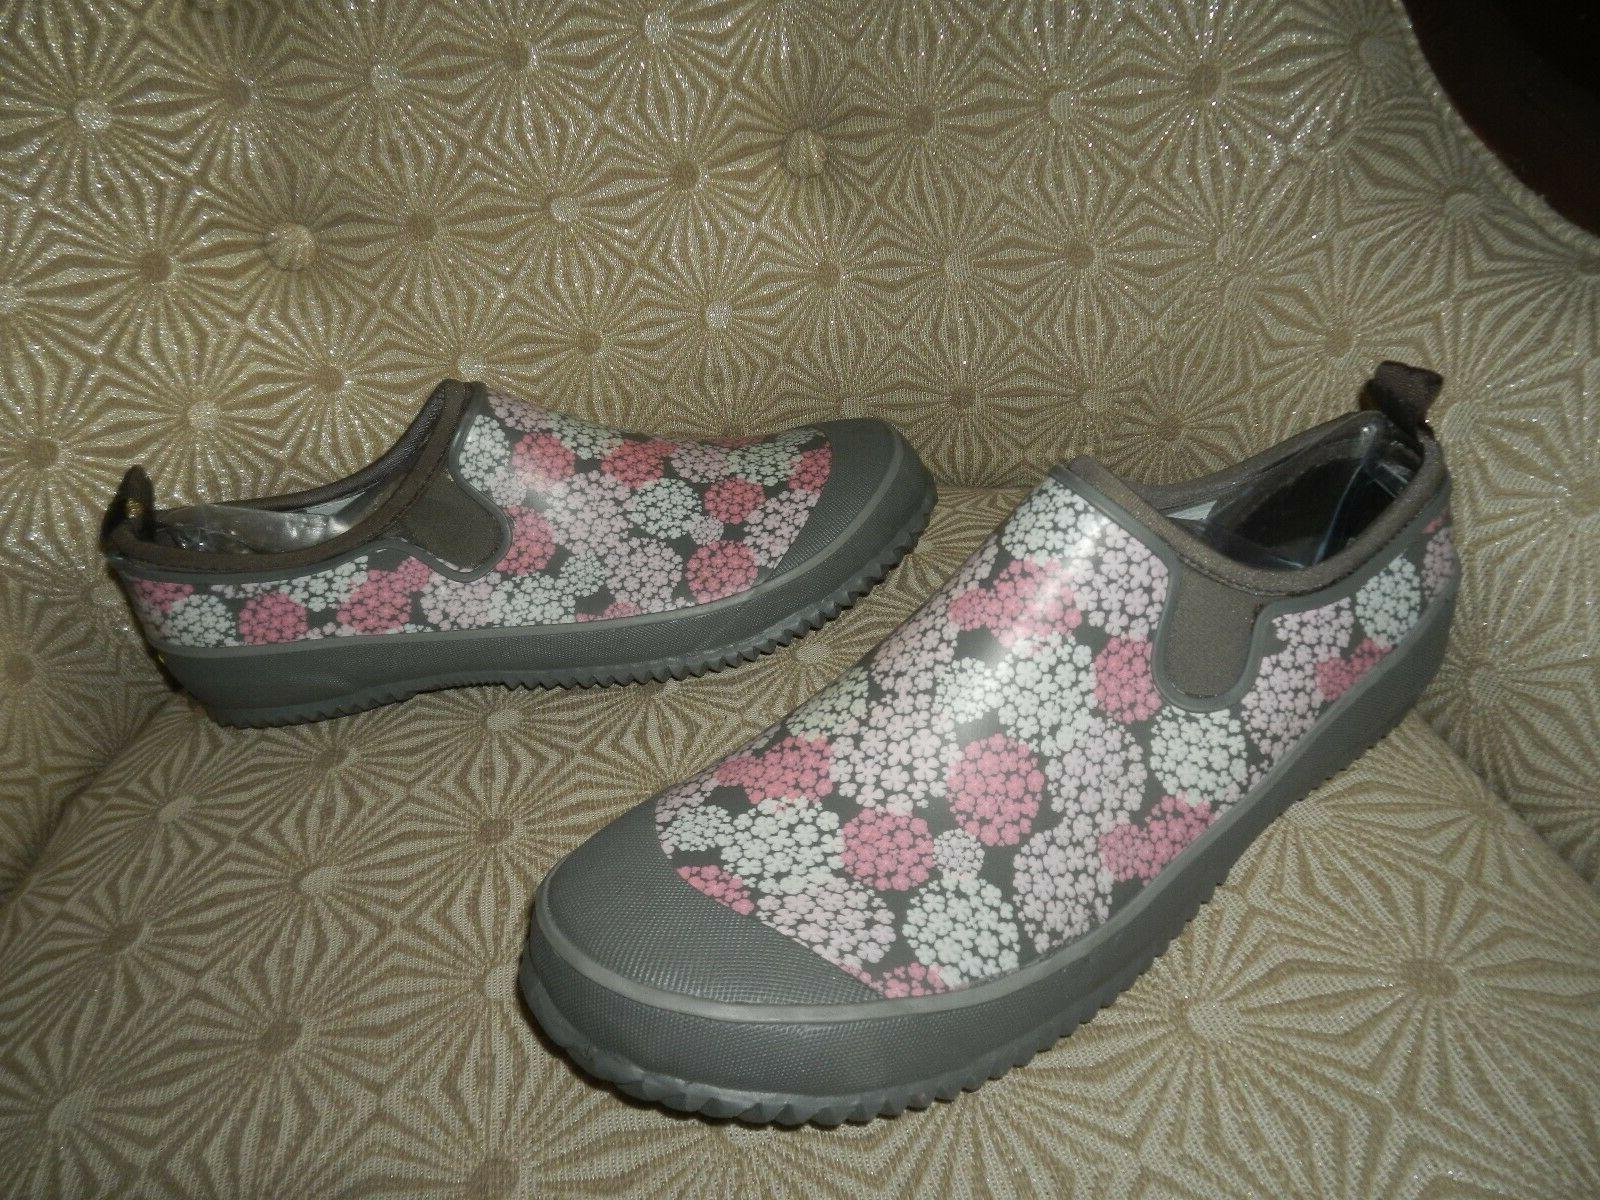 WESTERN Step In Gray/Pink/White Boots 11M NEW